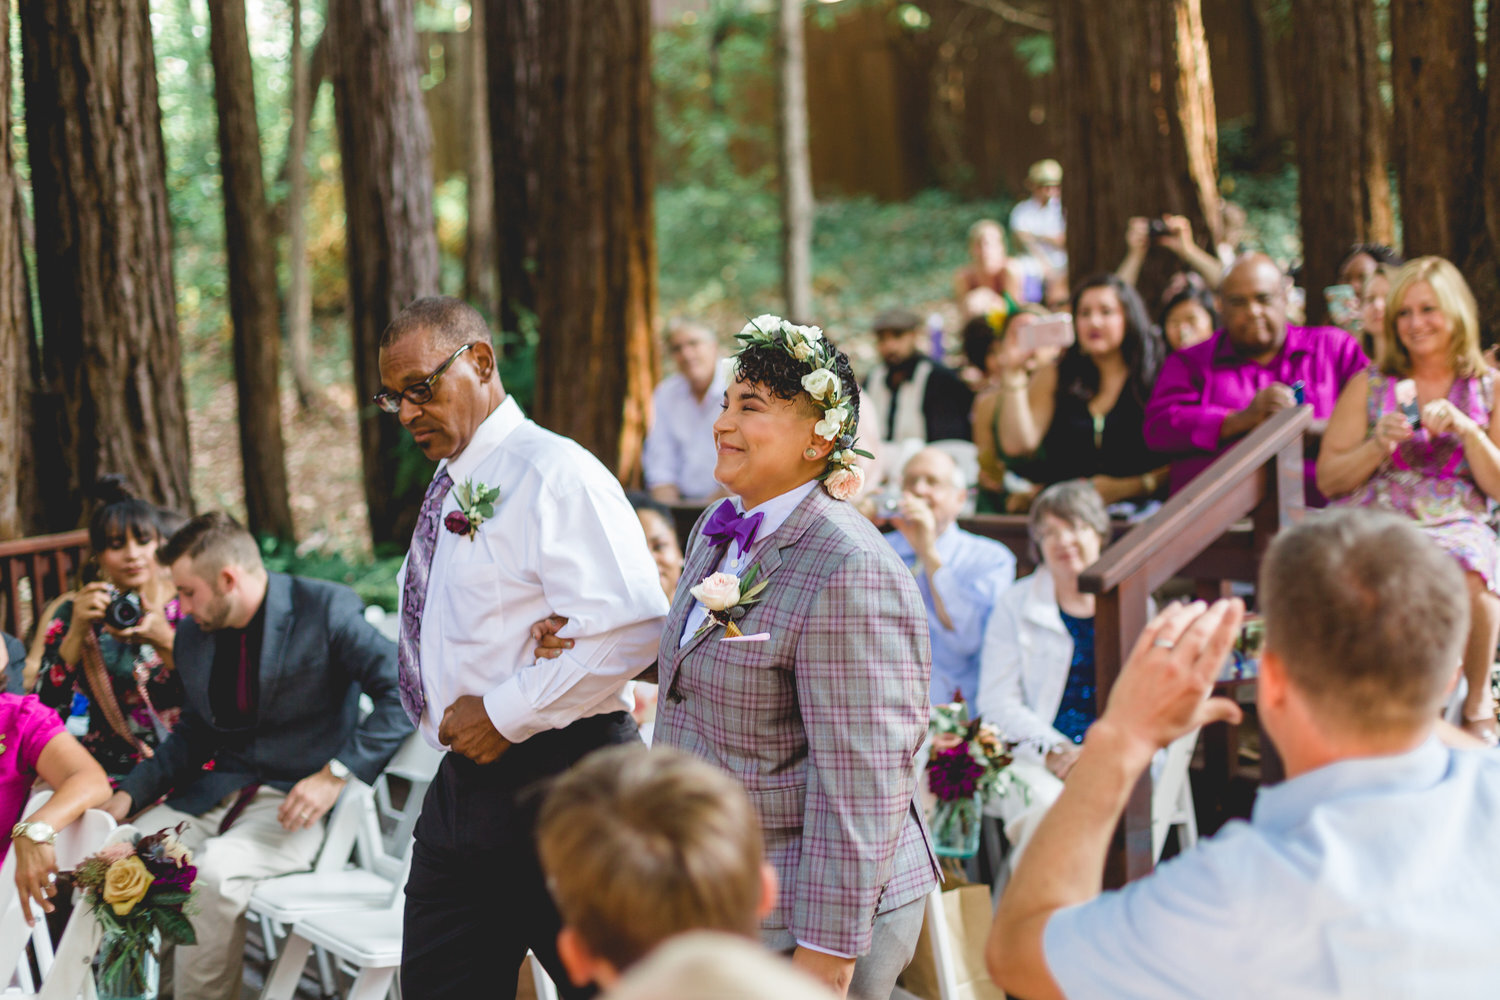 roz walking into wedding ceremony at redwoods sanctuary in California